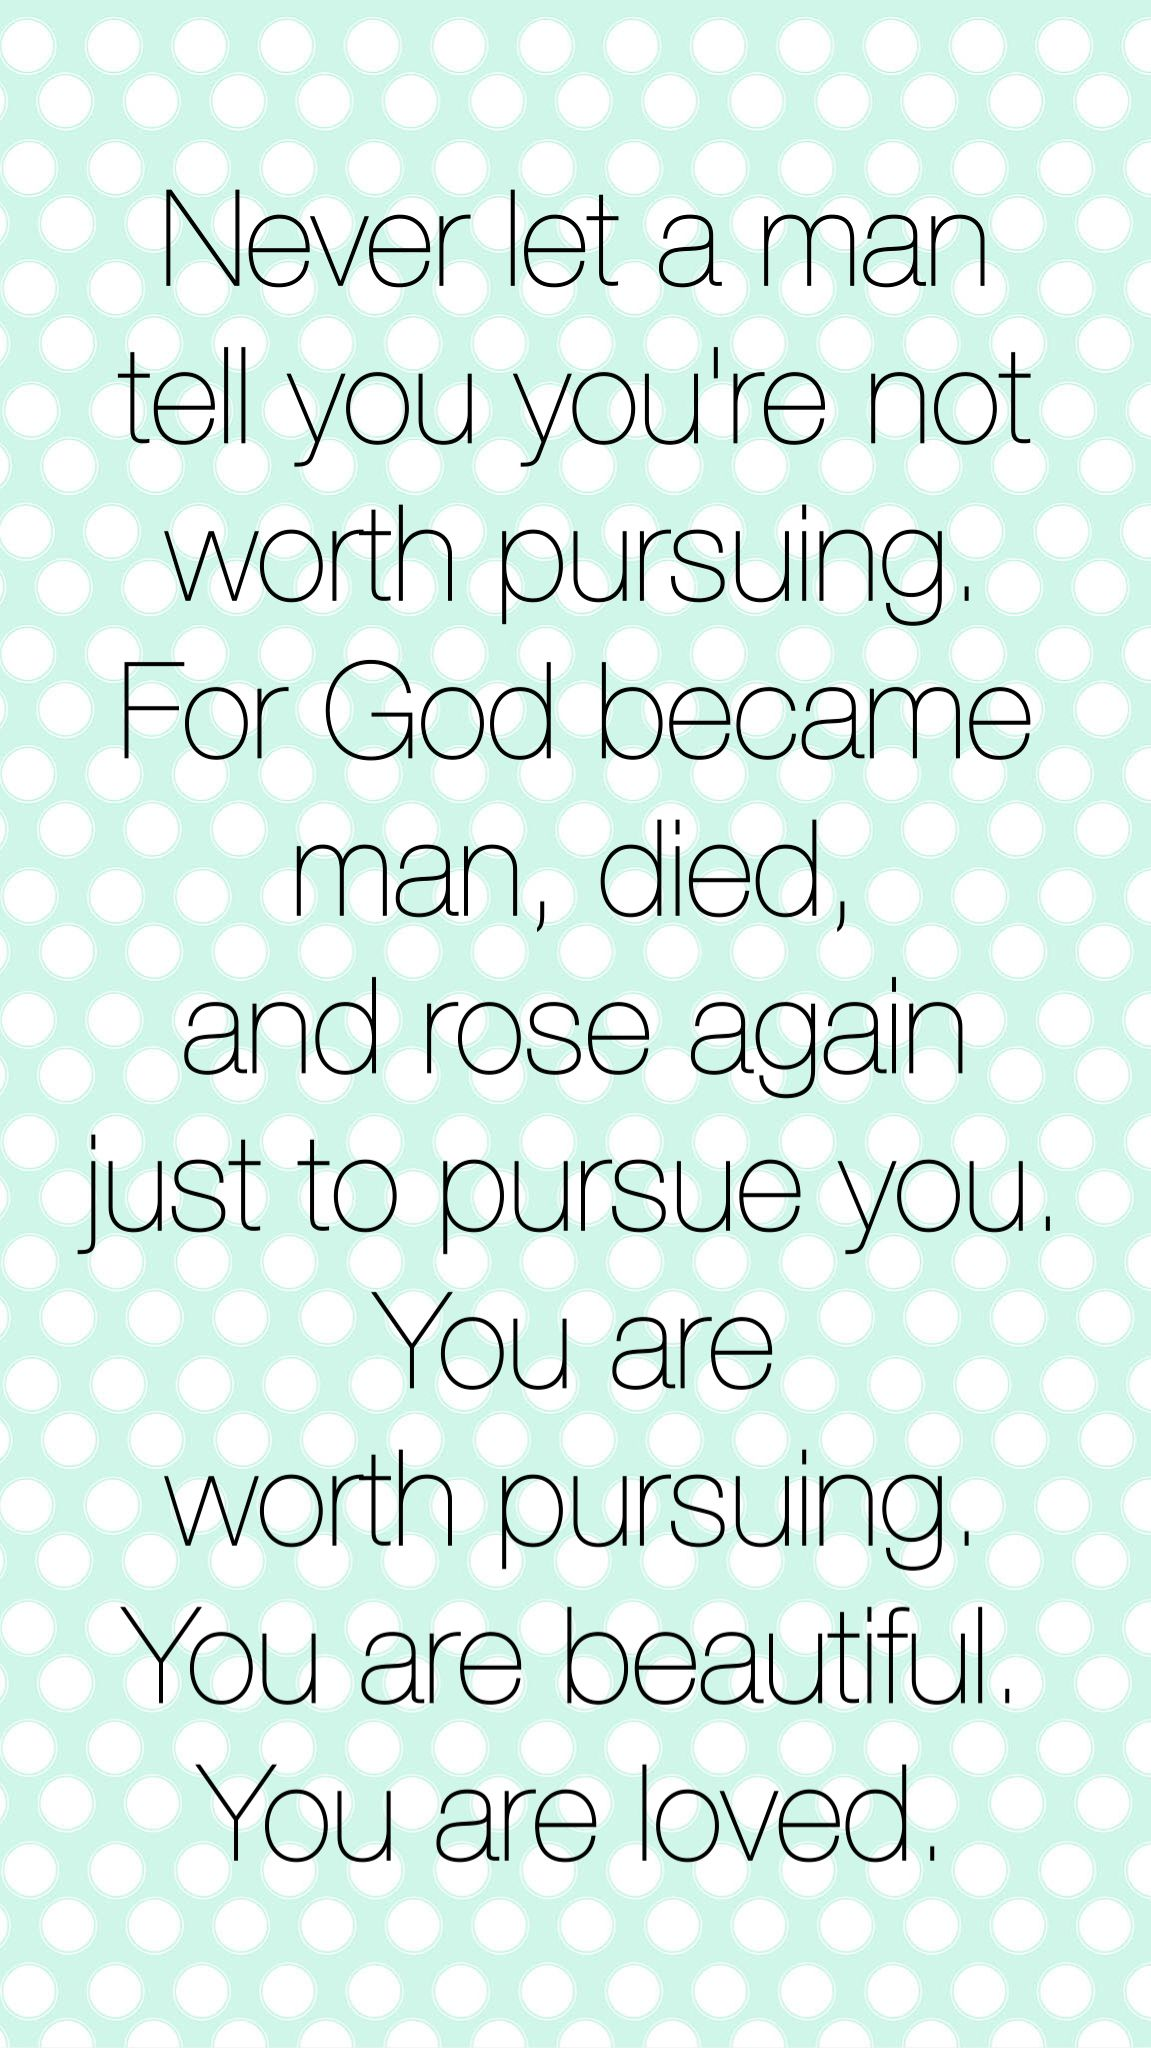 Let a man pursue you